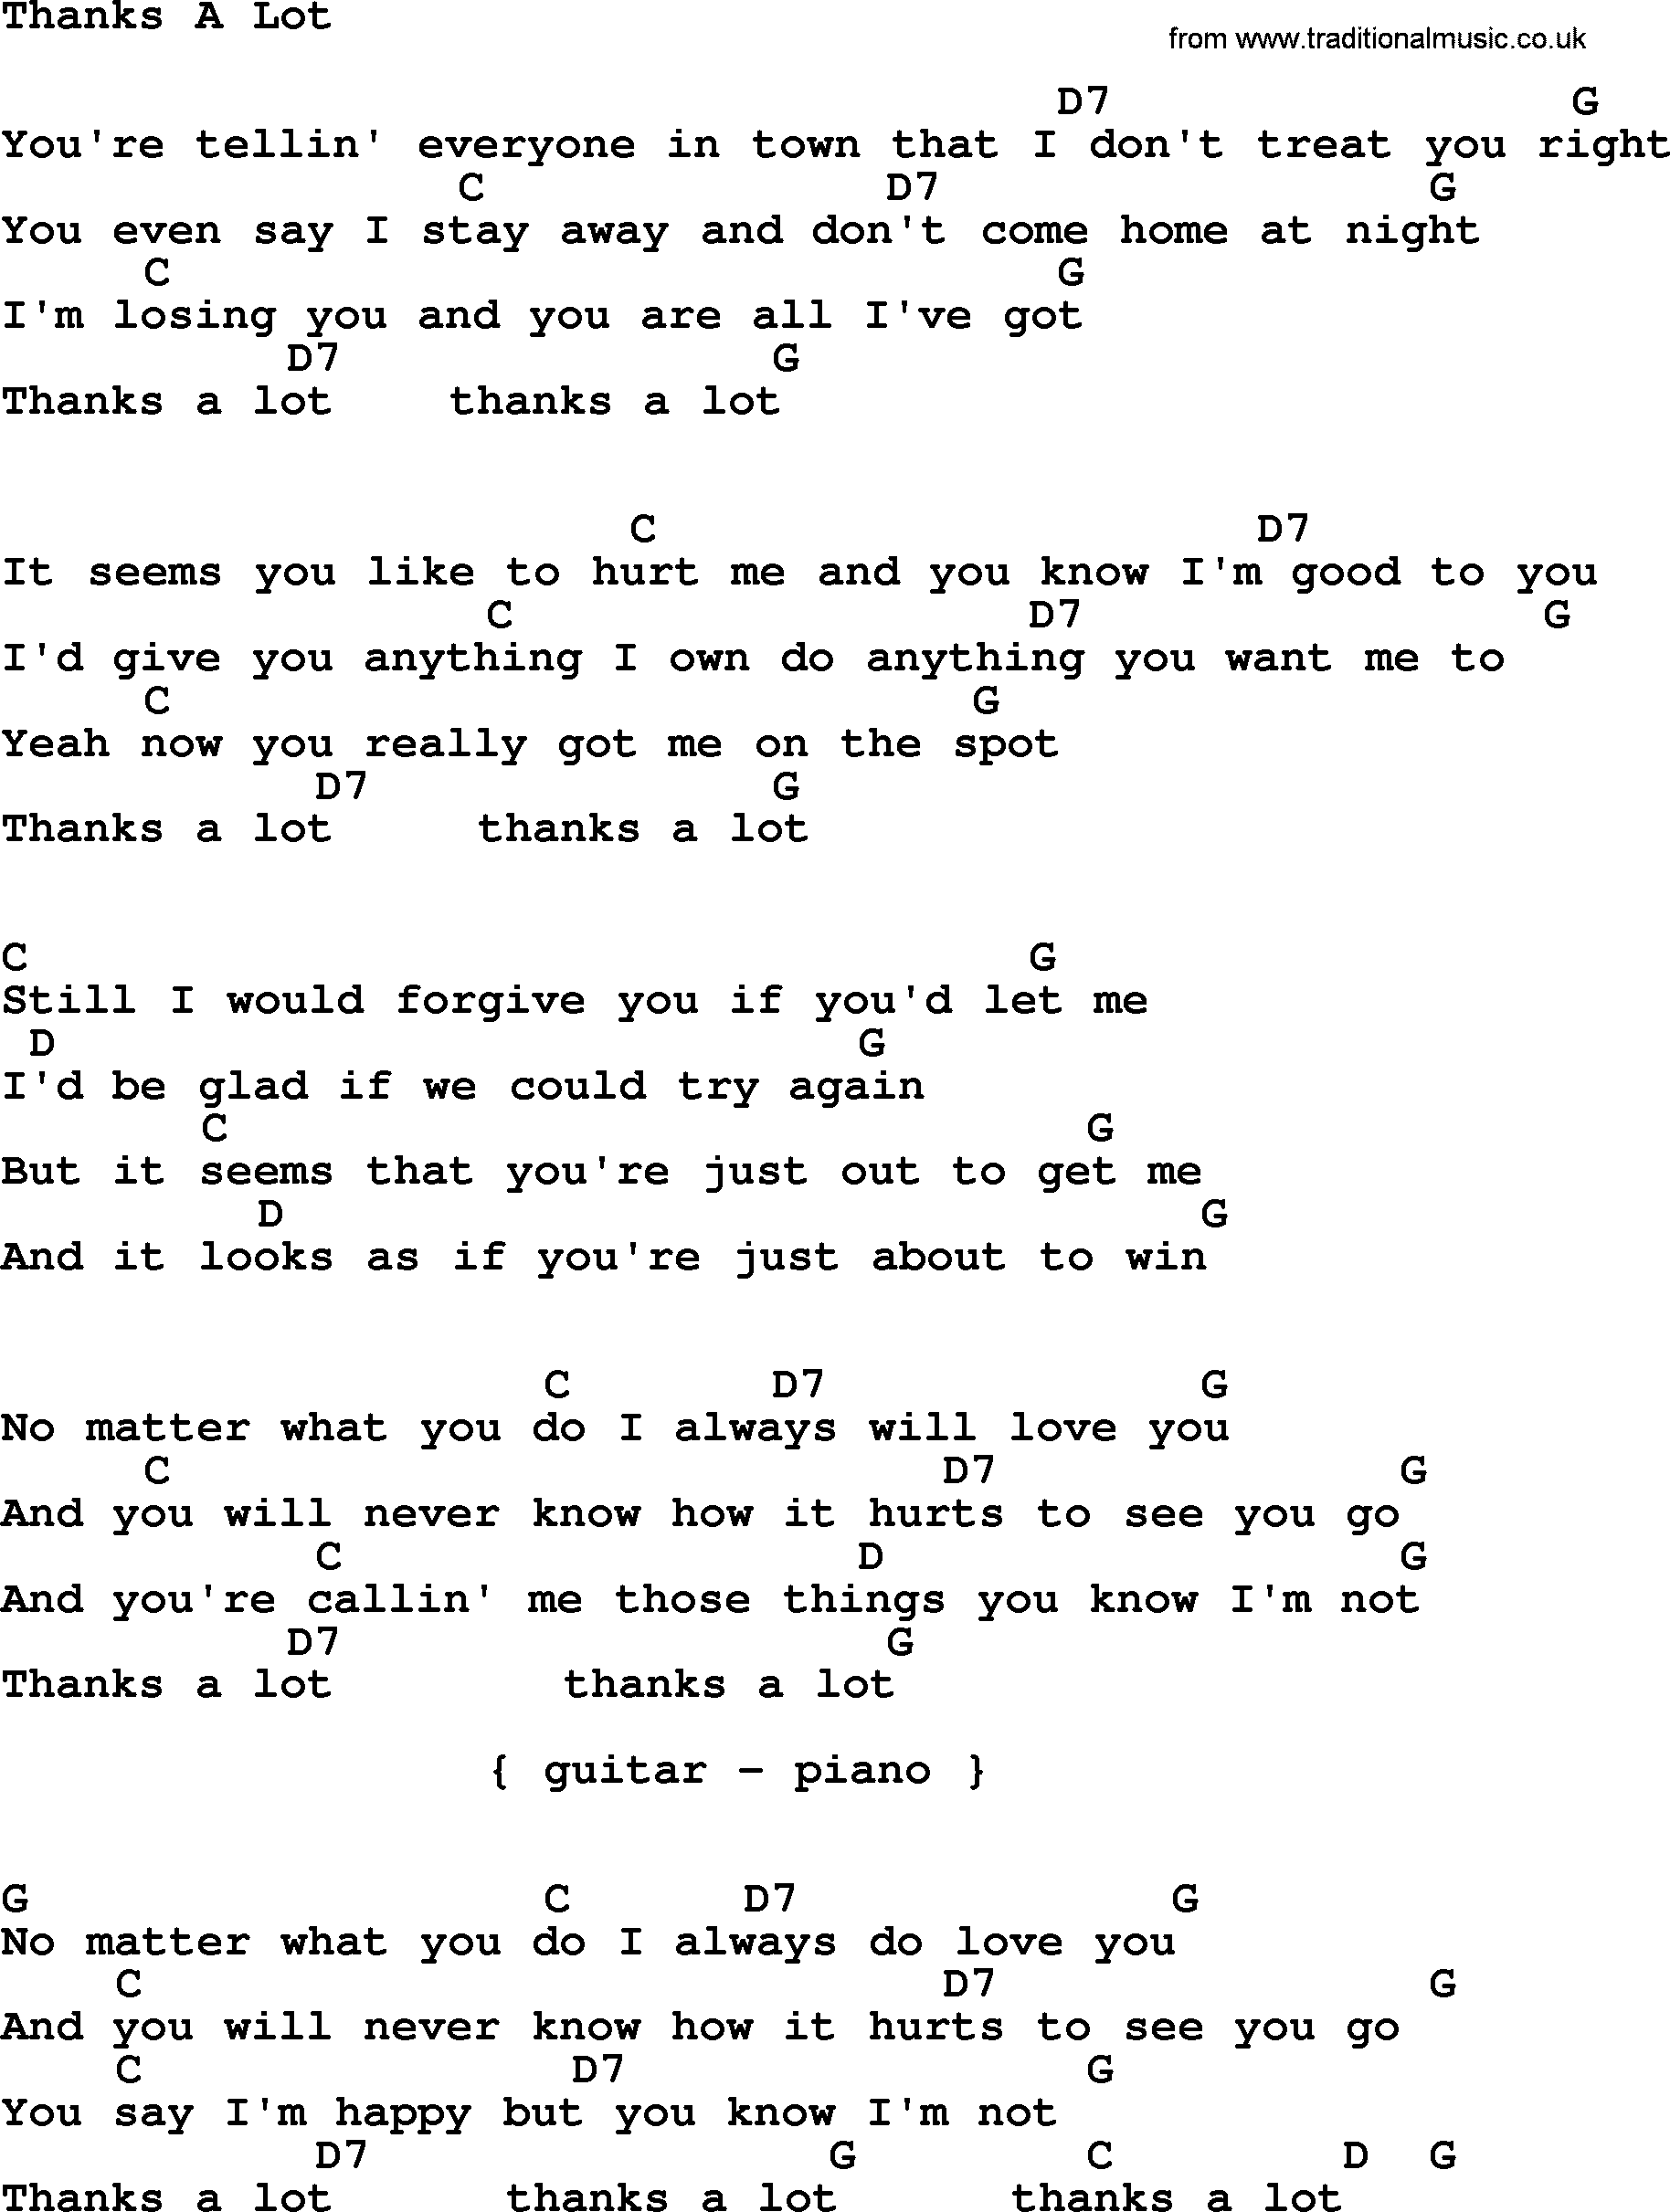 Johnny Cash Song Thanks A Lot Lyrics And Chords